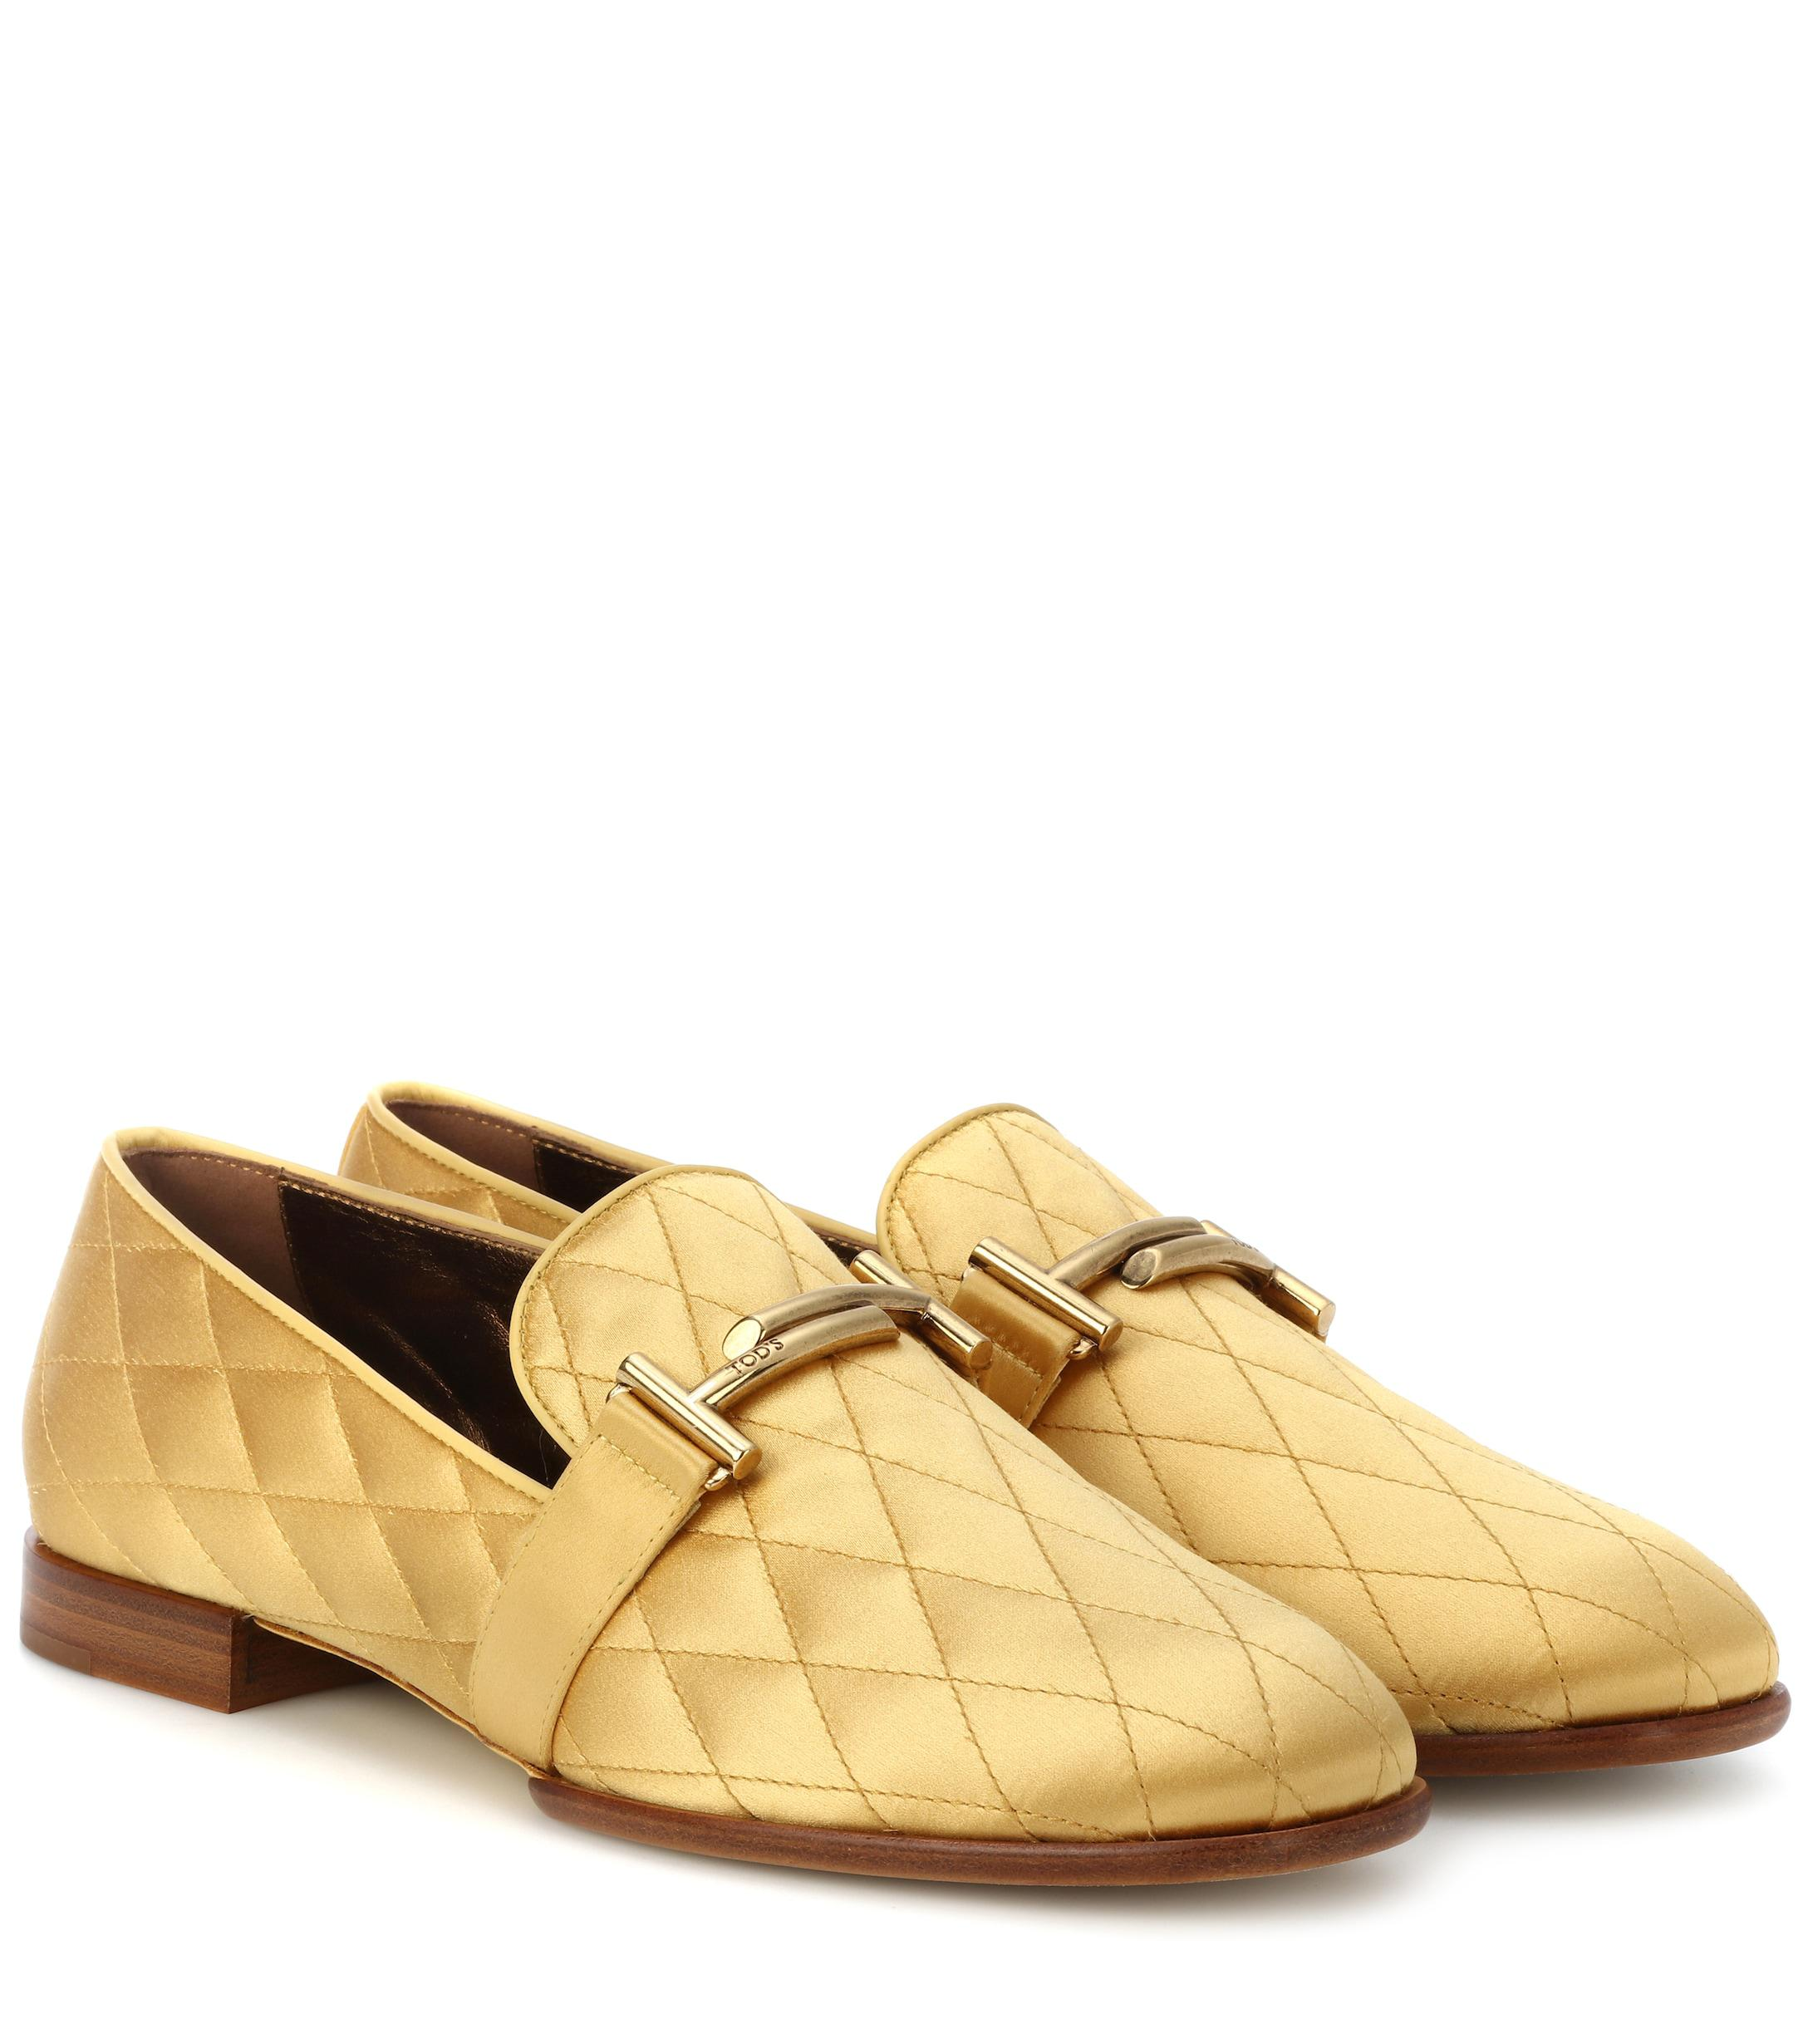 4d5b337db5b5 Tod S Double T Quilted Satin Loafers in Yellow - Lyst